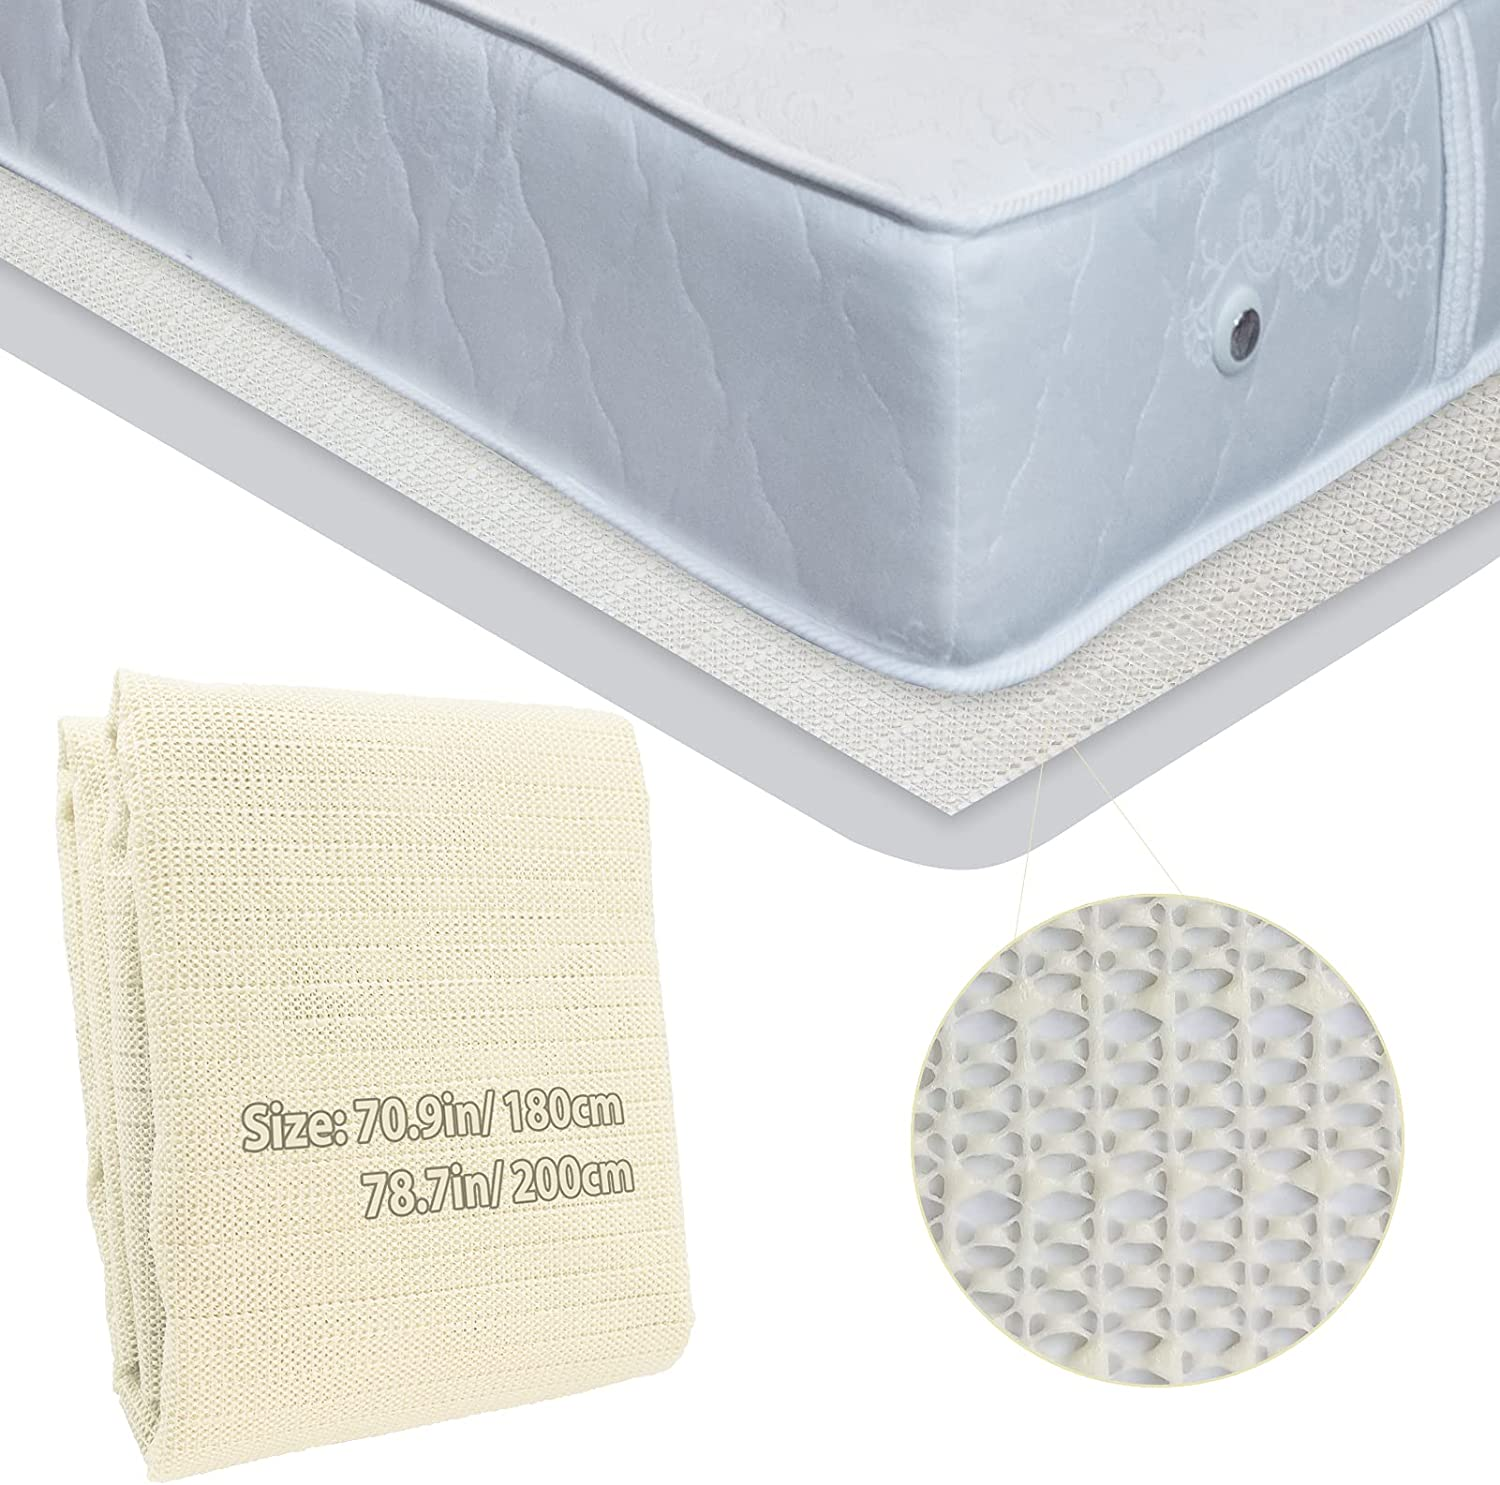 Non-Slip safety Mattress Gripper Safety and trust Pad Slide Durable KOMTASUO S